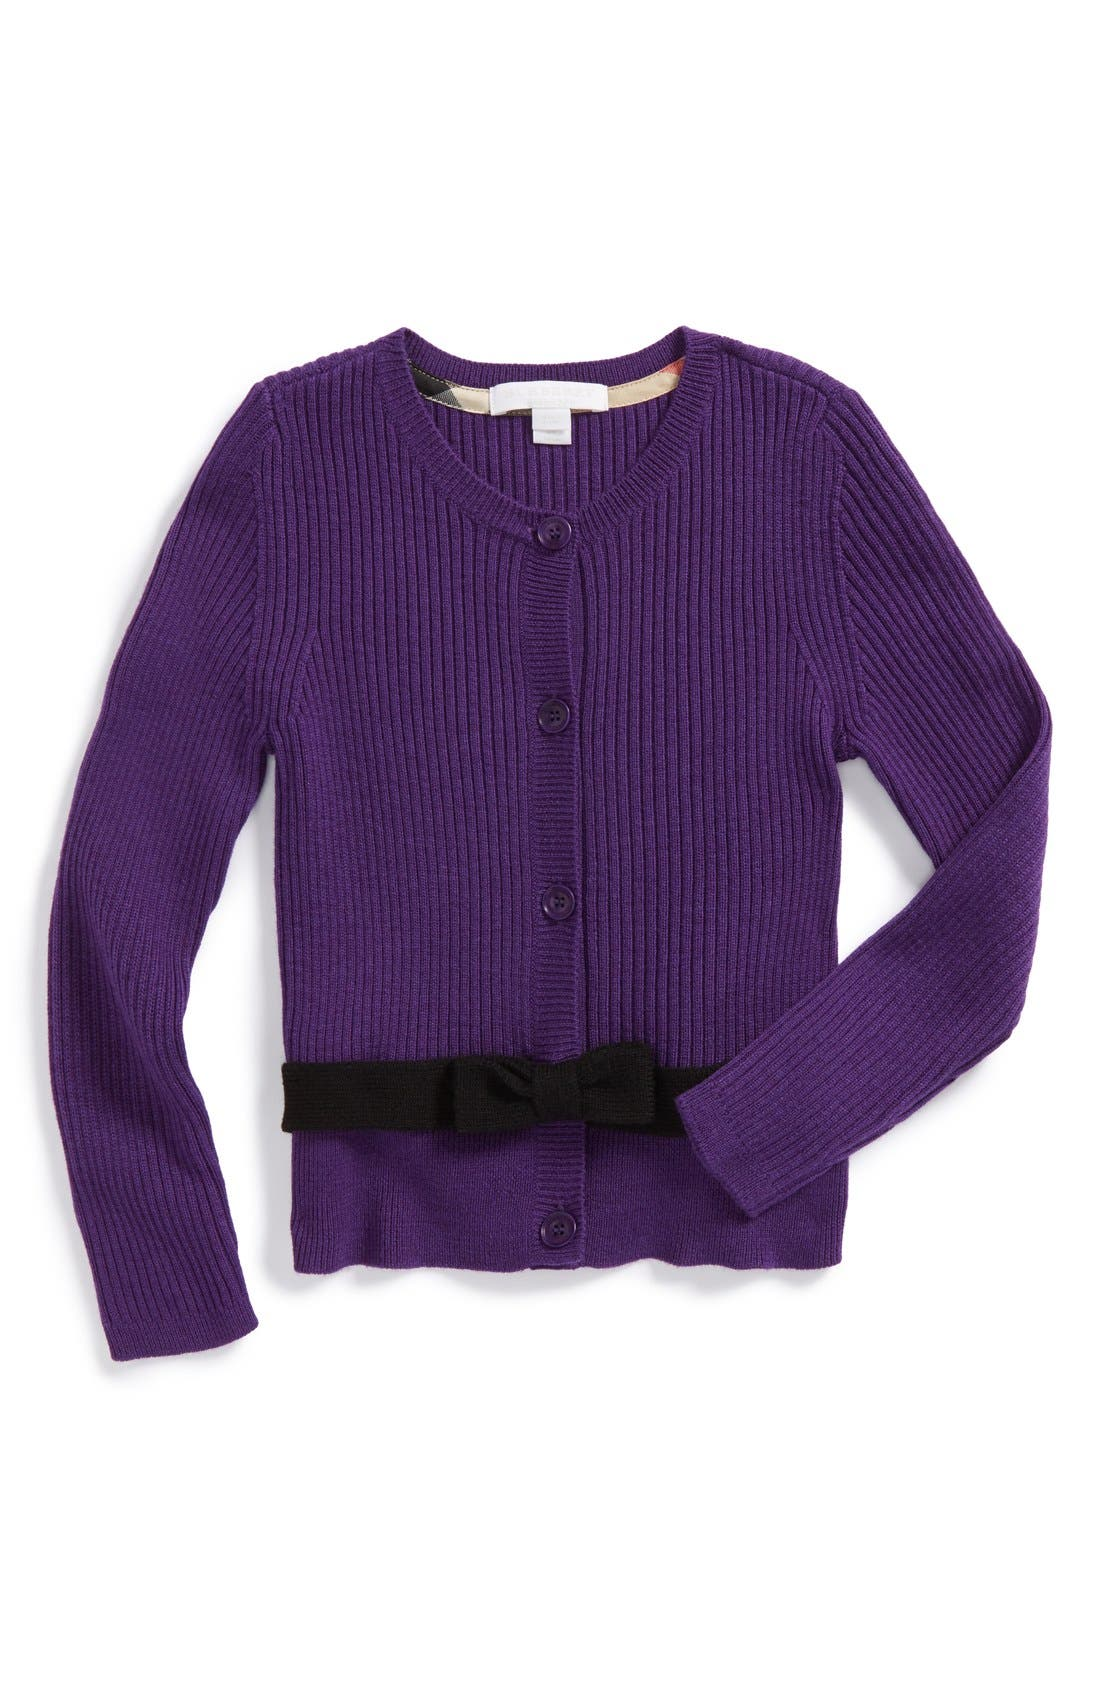 Main Image - Burberry Merino Wool Cardigan (Little Girls & Big Girls)